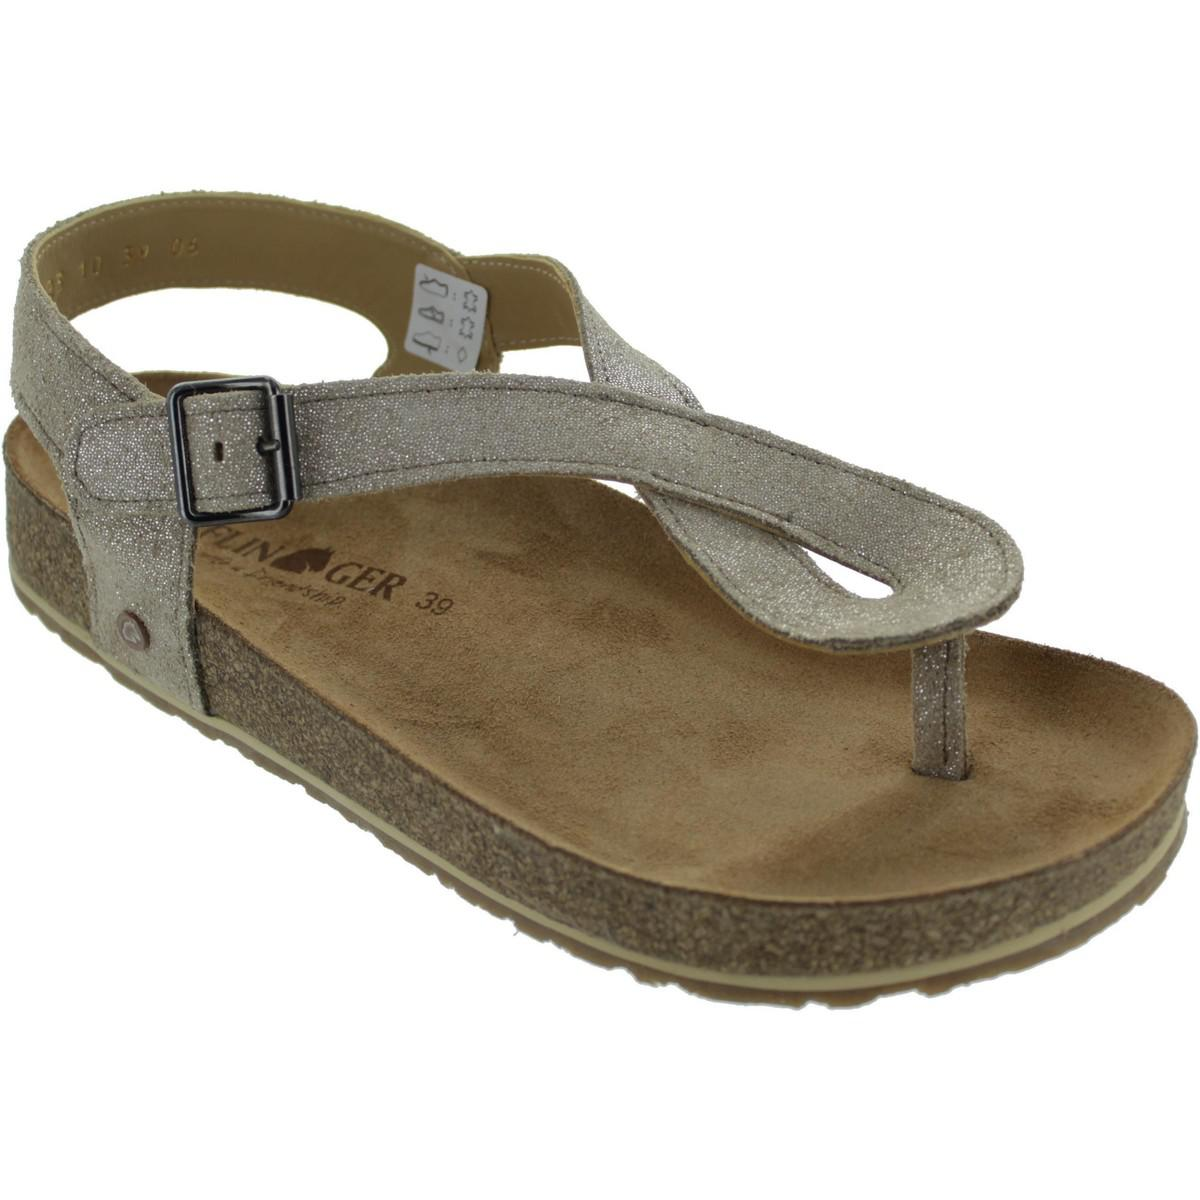 Haflinger Lena Womens Sandals In Beige Natural Lyst Inside Flats Hadid Khaky 37 View Fullscreen